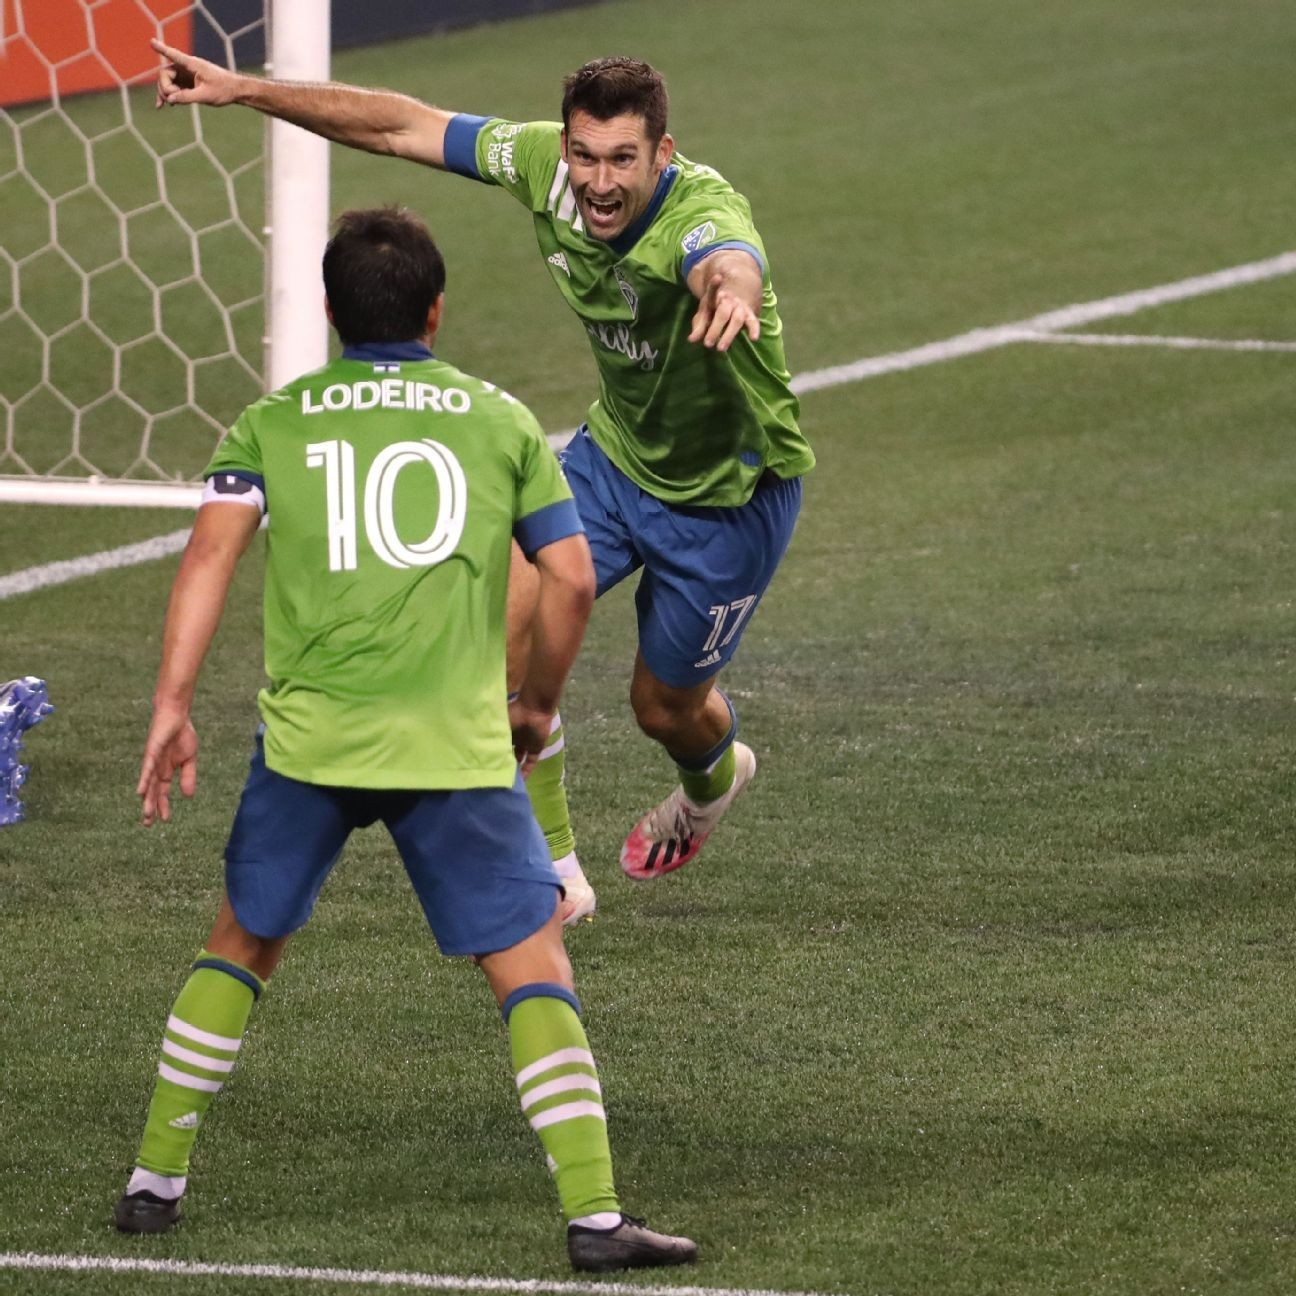 Sounders score late goal, earn draw with Timbers